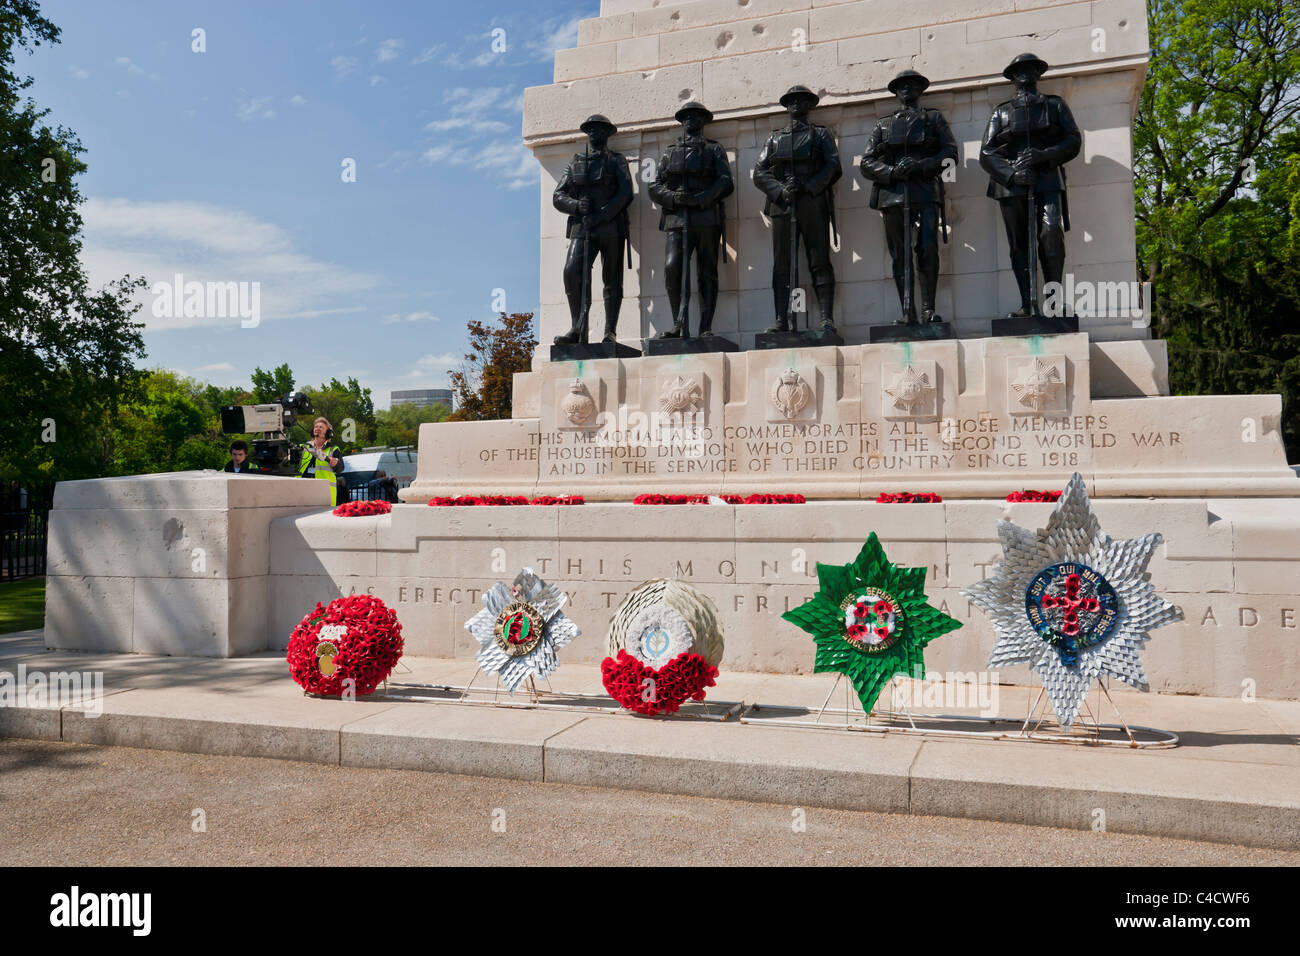 Household division war memorial who died in the Second world war - Stock Image